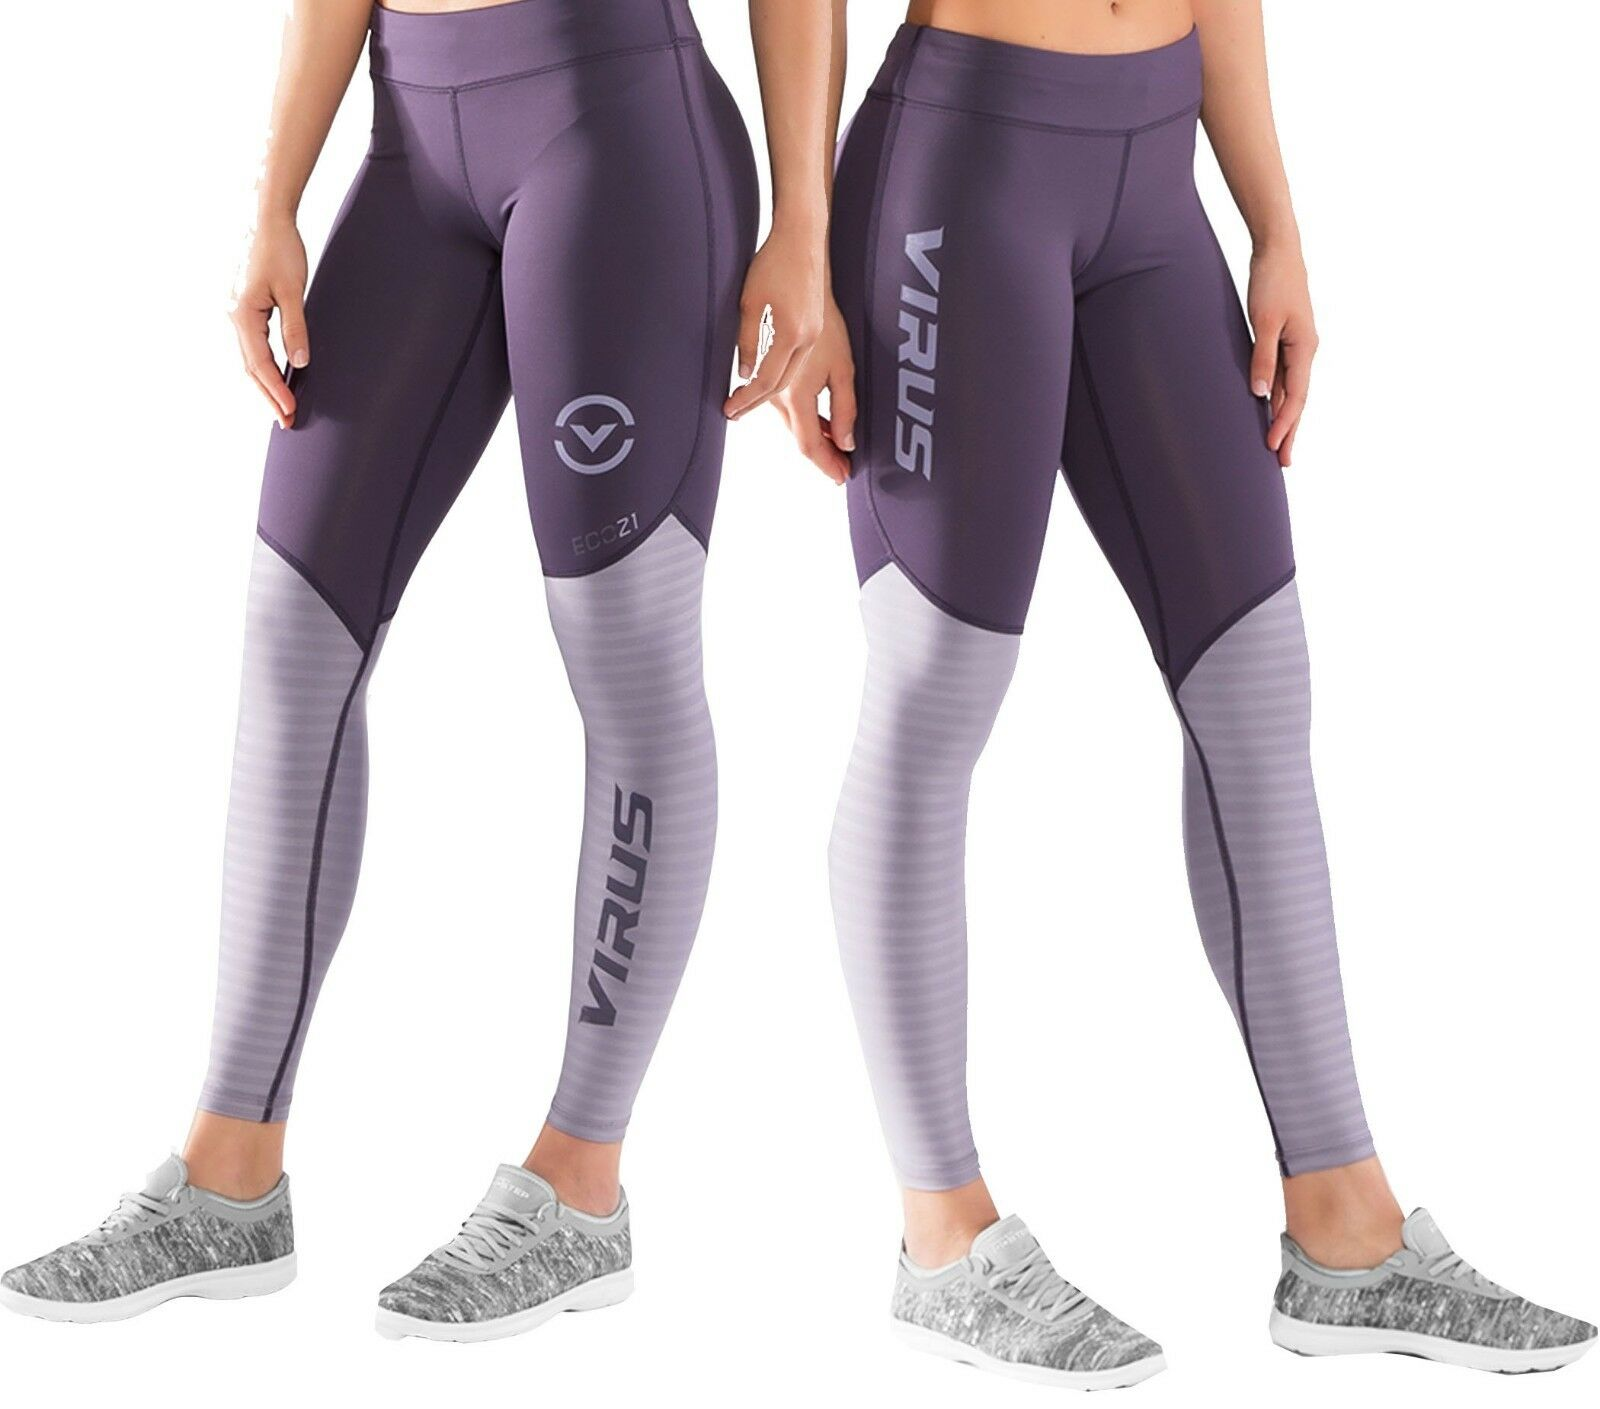 VIRUS WOMEN'S ECO21.5 STAY COOL V2 COMPRESSION PANTS   Crossfit